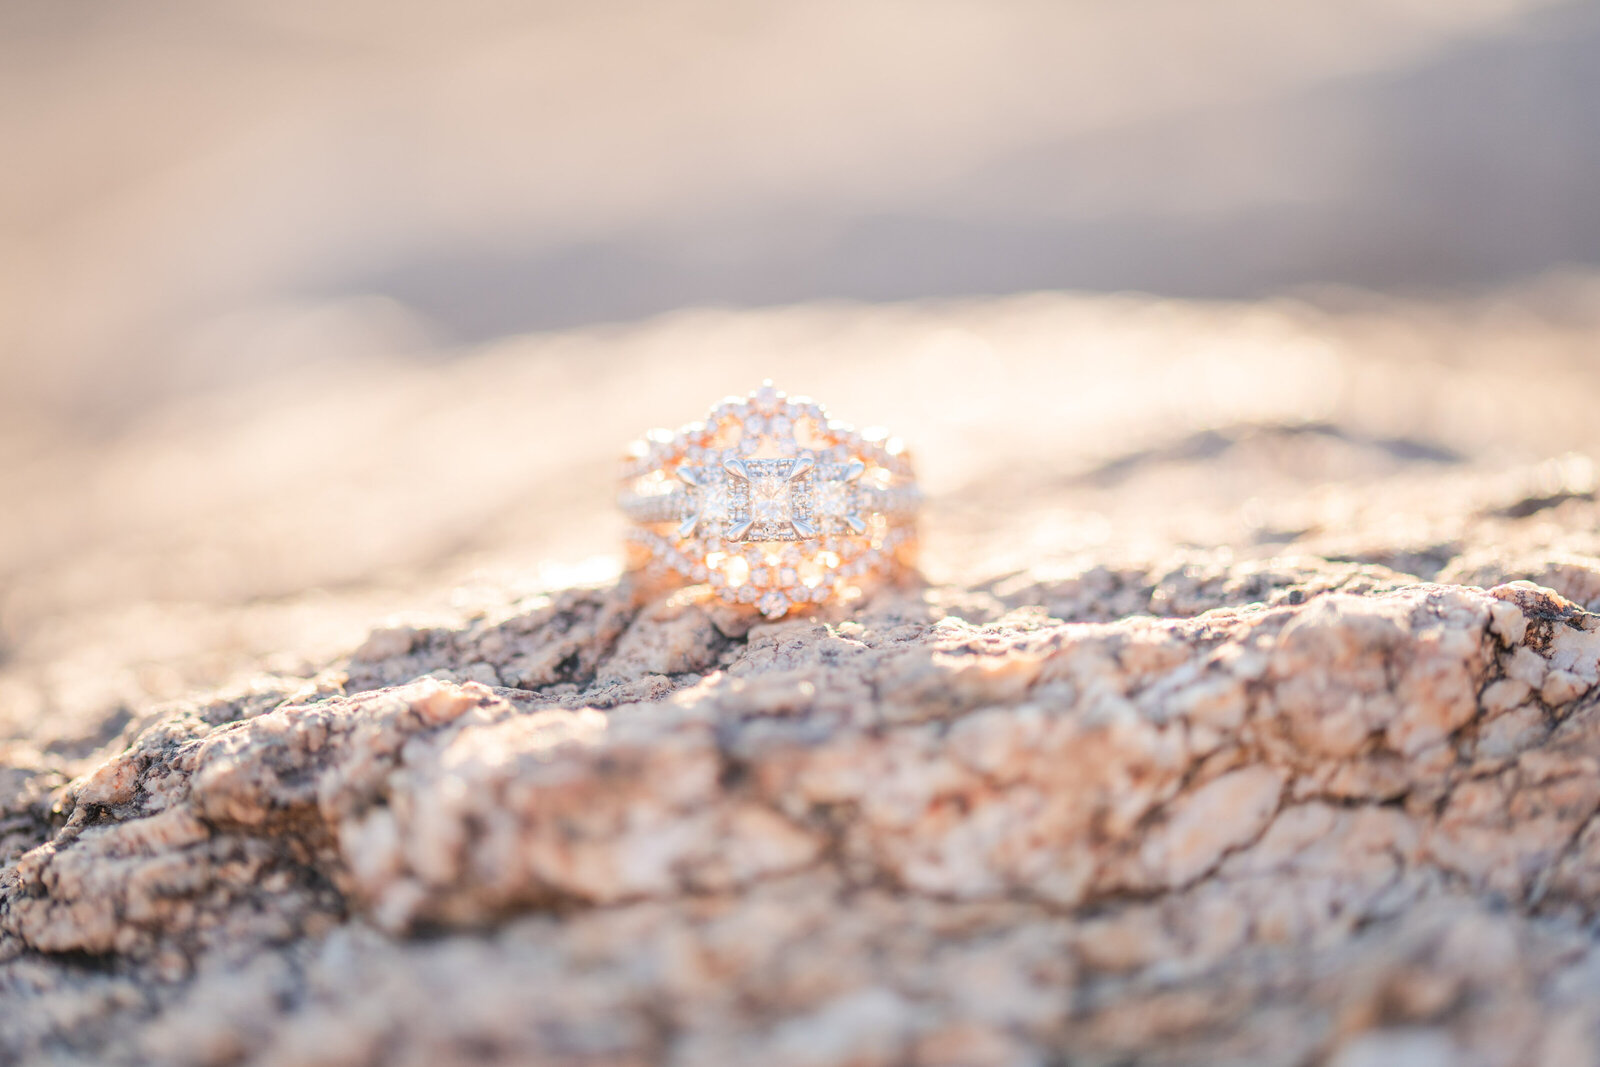 intricate antique style engagement ring on stone